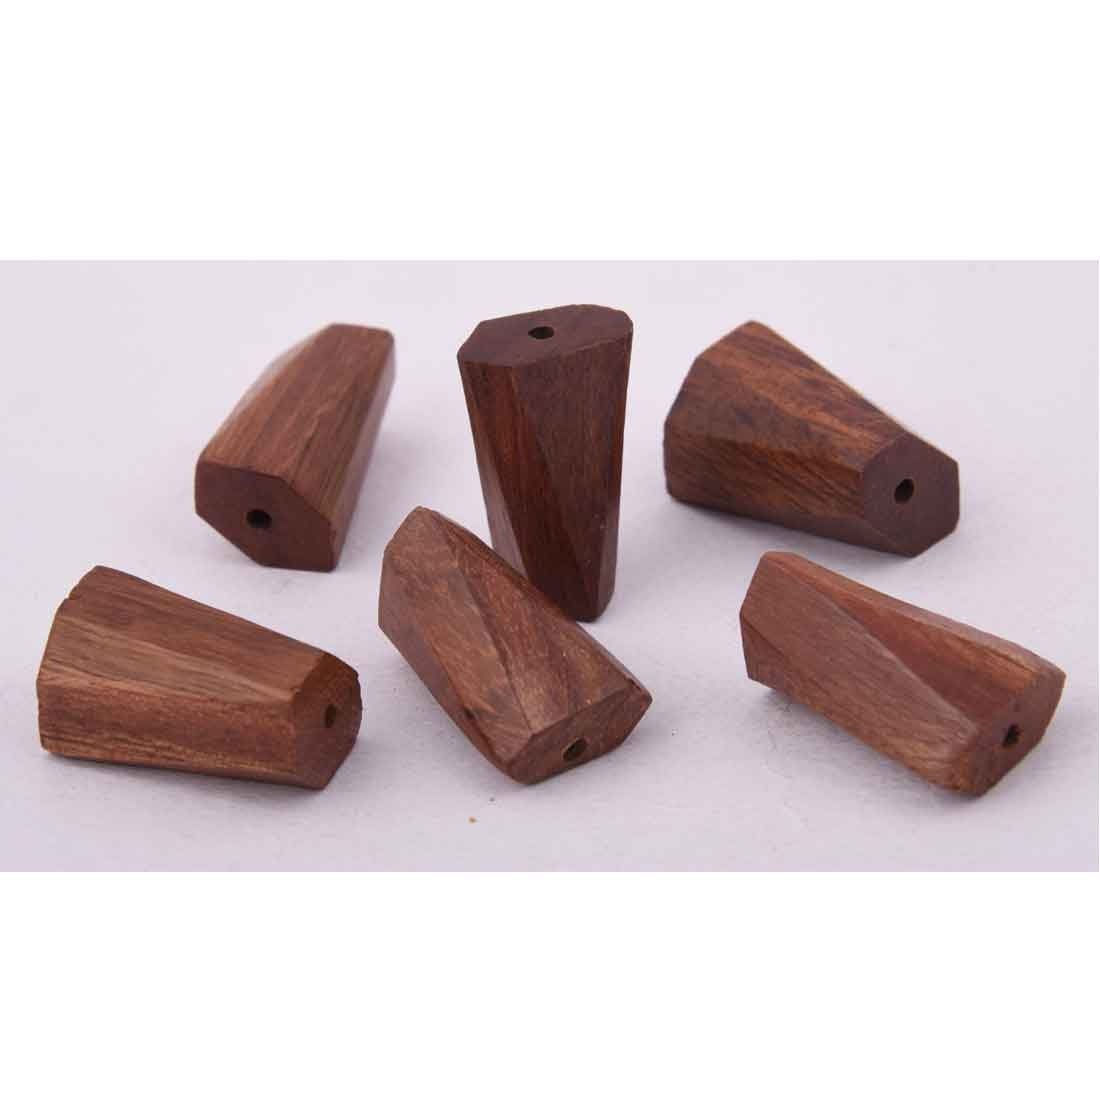 Beads India 1700097 Handcrafted Wooden Beads/Discounts Above 500 pcs